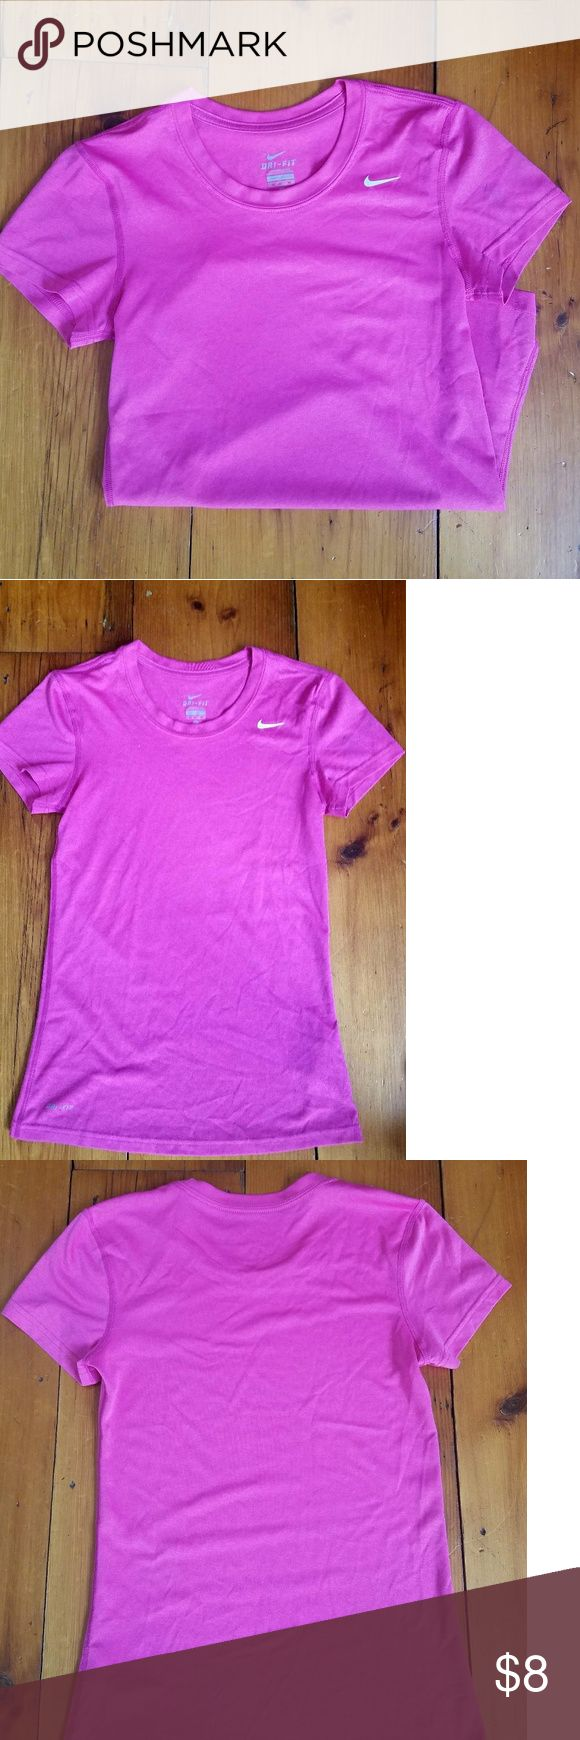 Nike Dri-Fit Tee Pink XS athletic tee. There are 2 small marks on the left sleeve that look to be pen marks (see last pic) but no flaws other than that. Nike Tops Tees - Short Sleeve